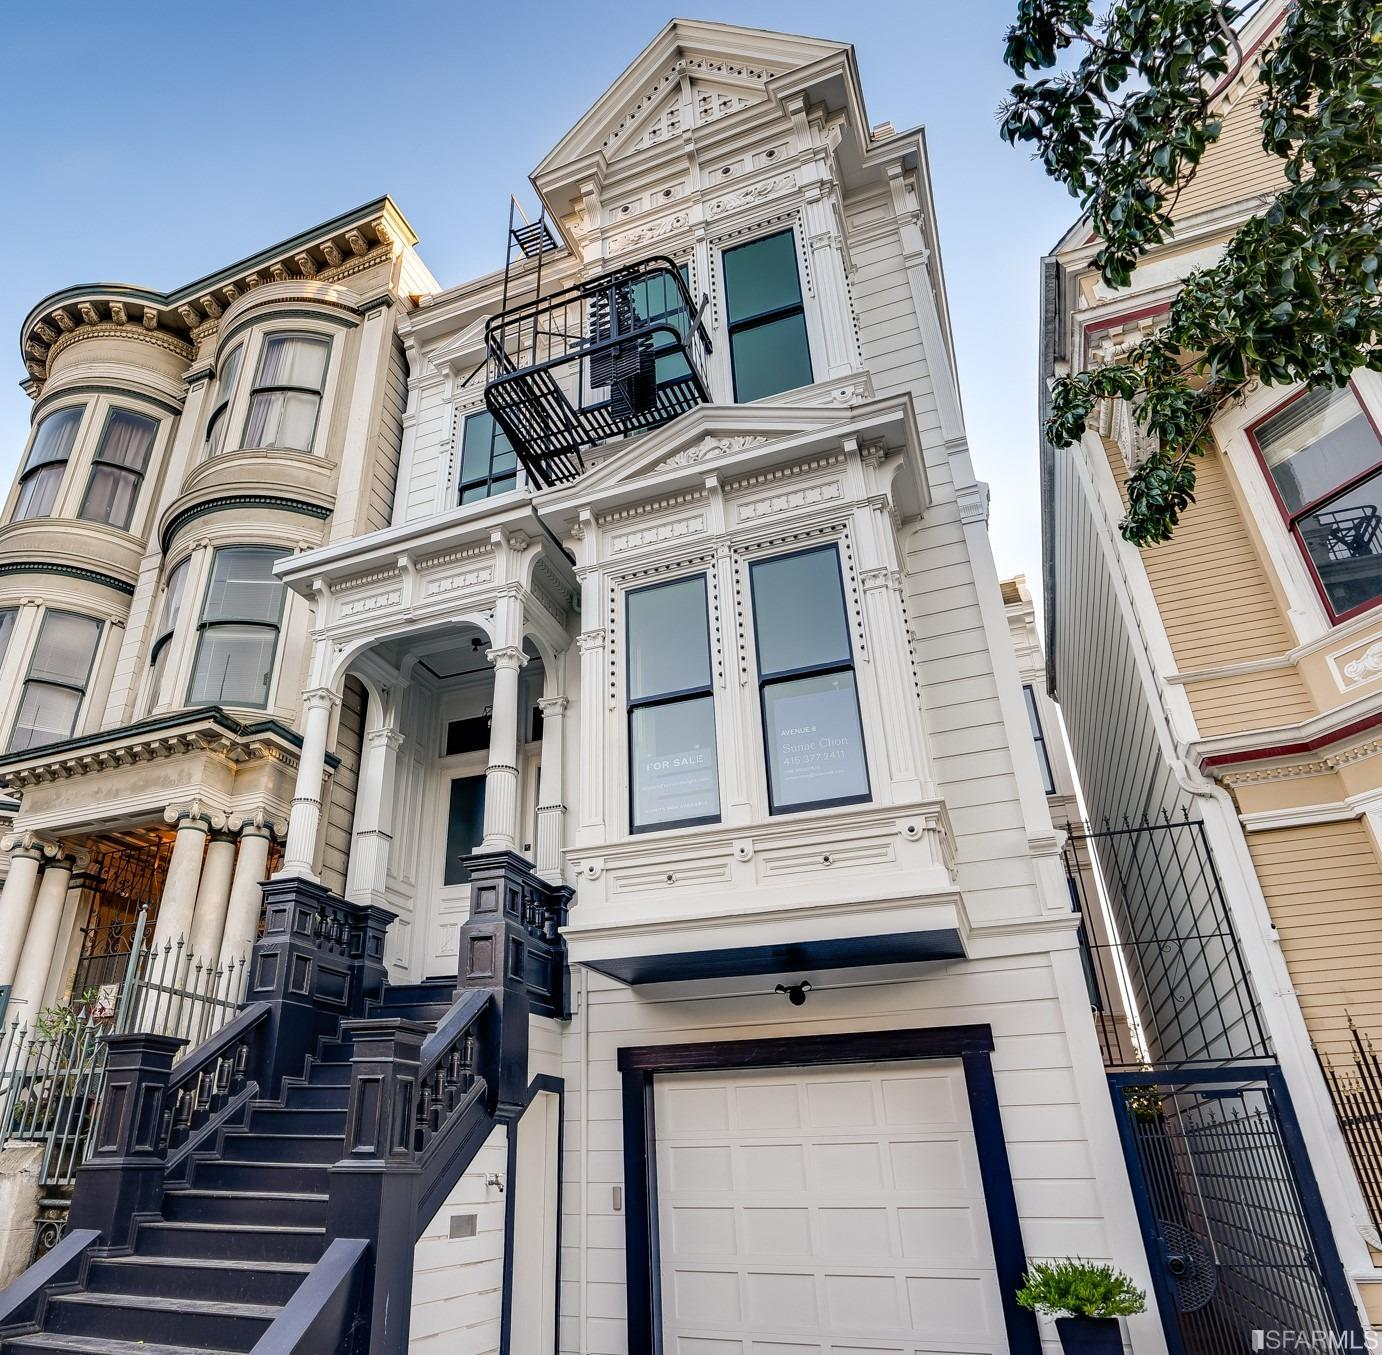 Classic Victorian meets modern function. This vacant 4-unit home offers unimaginable privacy and fabulous original period details and flair. Wonderfully down-to-the-stud remodel with must experience 12' ceiling. Ideal for work and relaxation, each unit presents an open floor plan. Lively Lower Haight. Legendary restaurants abound. Historical close-in neighborhood, great as a family compound, partners or as income property. San Francisco Symphony, Hayes Valley commercial strip, 24-hour Fitness, Whole Foods, Duboce Park, tech bus a few blocks away.